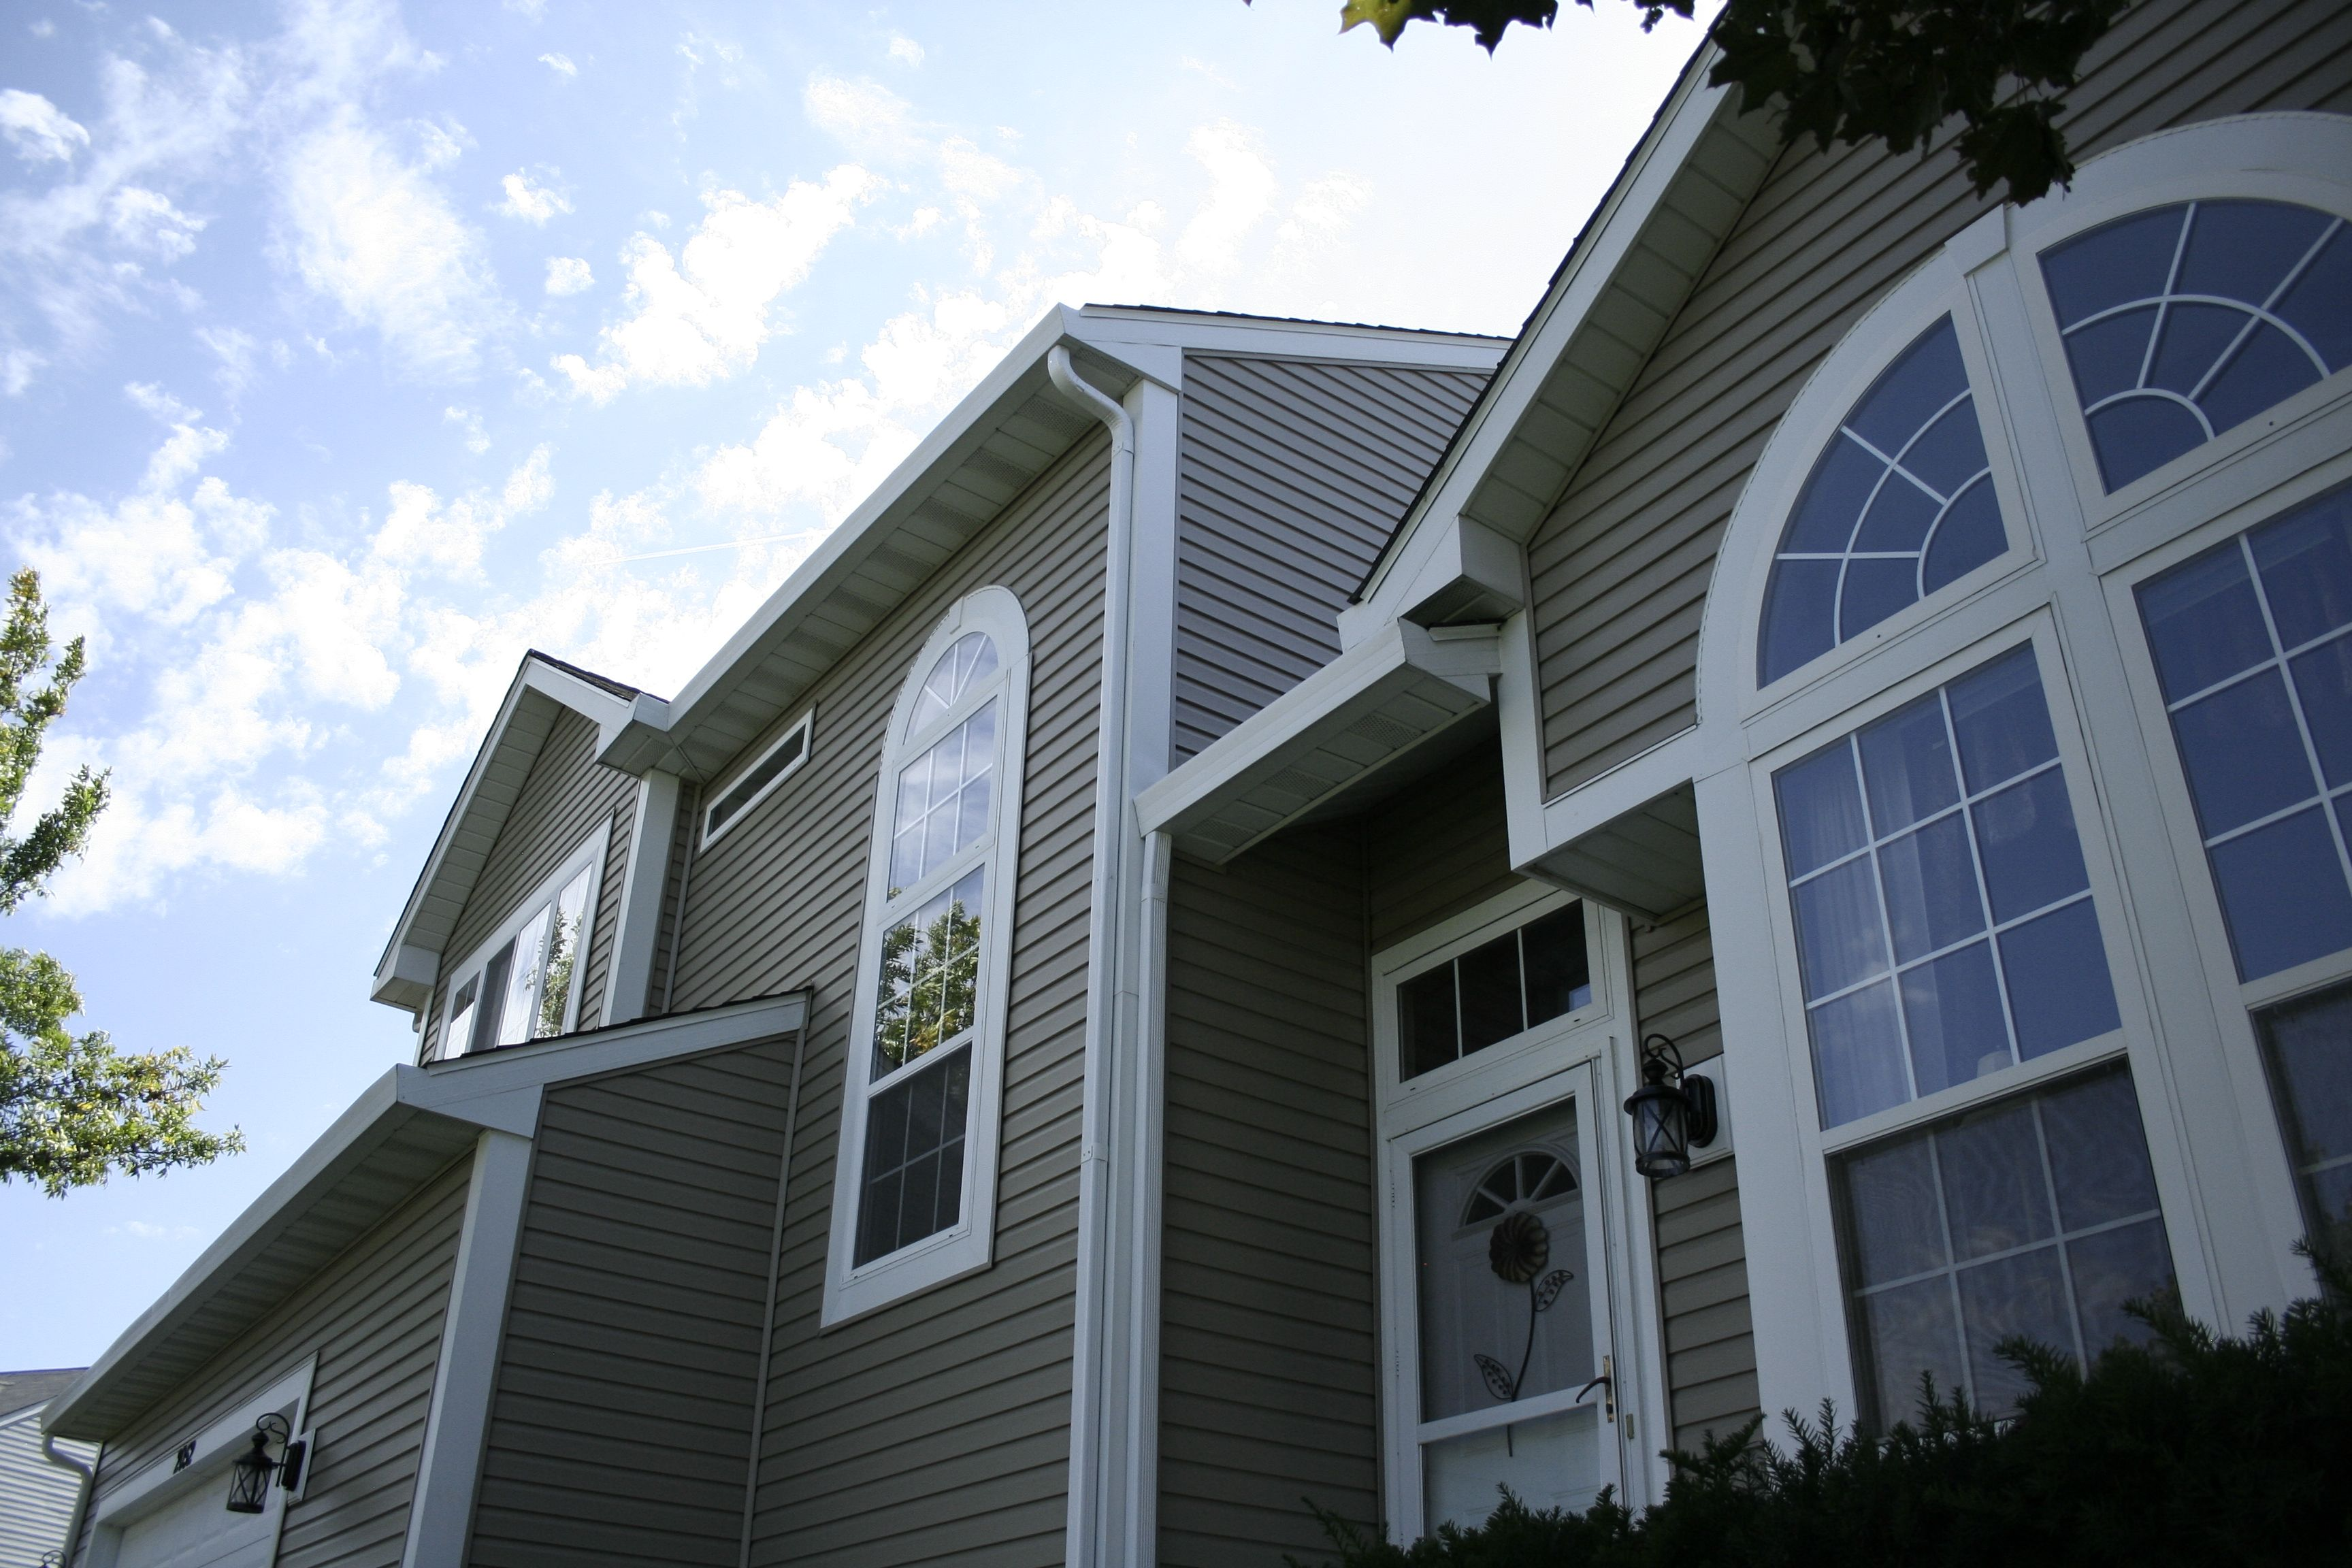 Siding Windows Roofing Contractors Naperville Il Siding Roofing Contractors Vinyl Siding